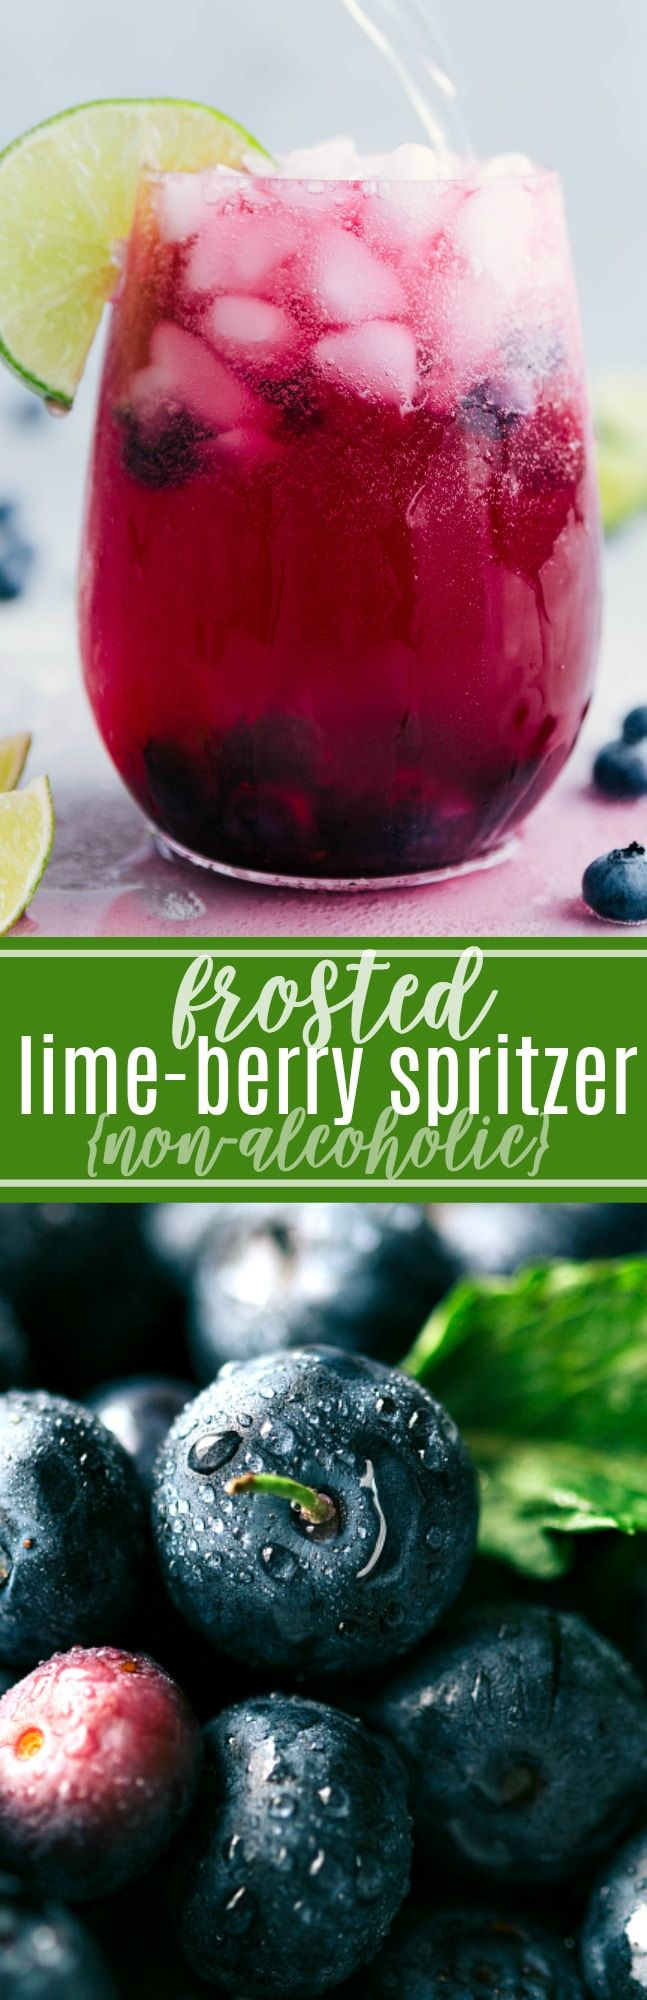 A delicious blueberry mandarine-lime beverage. This spritzer is non-alcoholic made with a sugared blueberry base and a mandarine-lime sparkling water. chelseasmessyapron.com